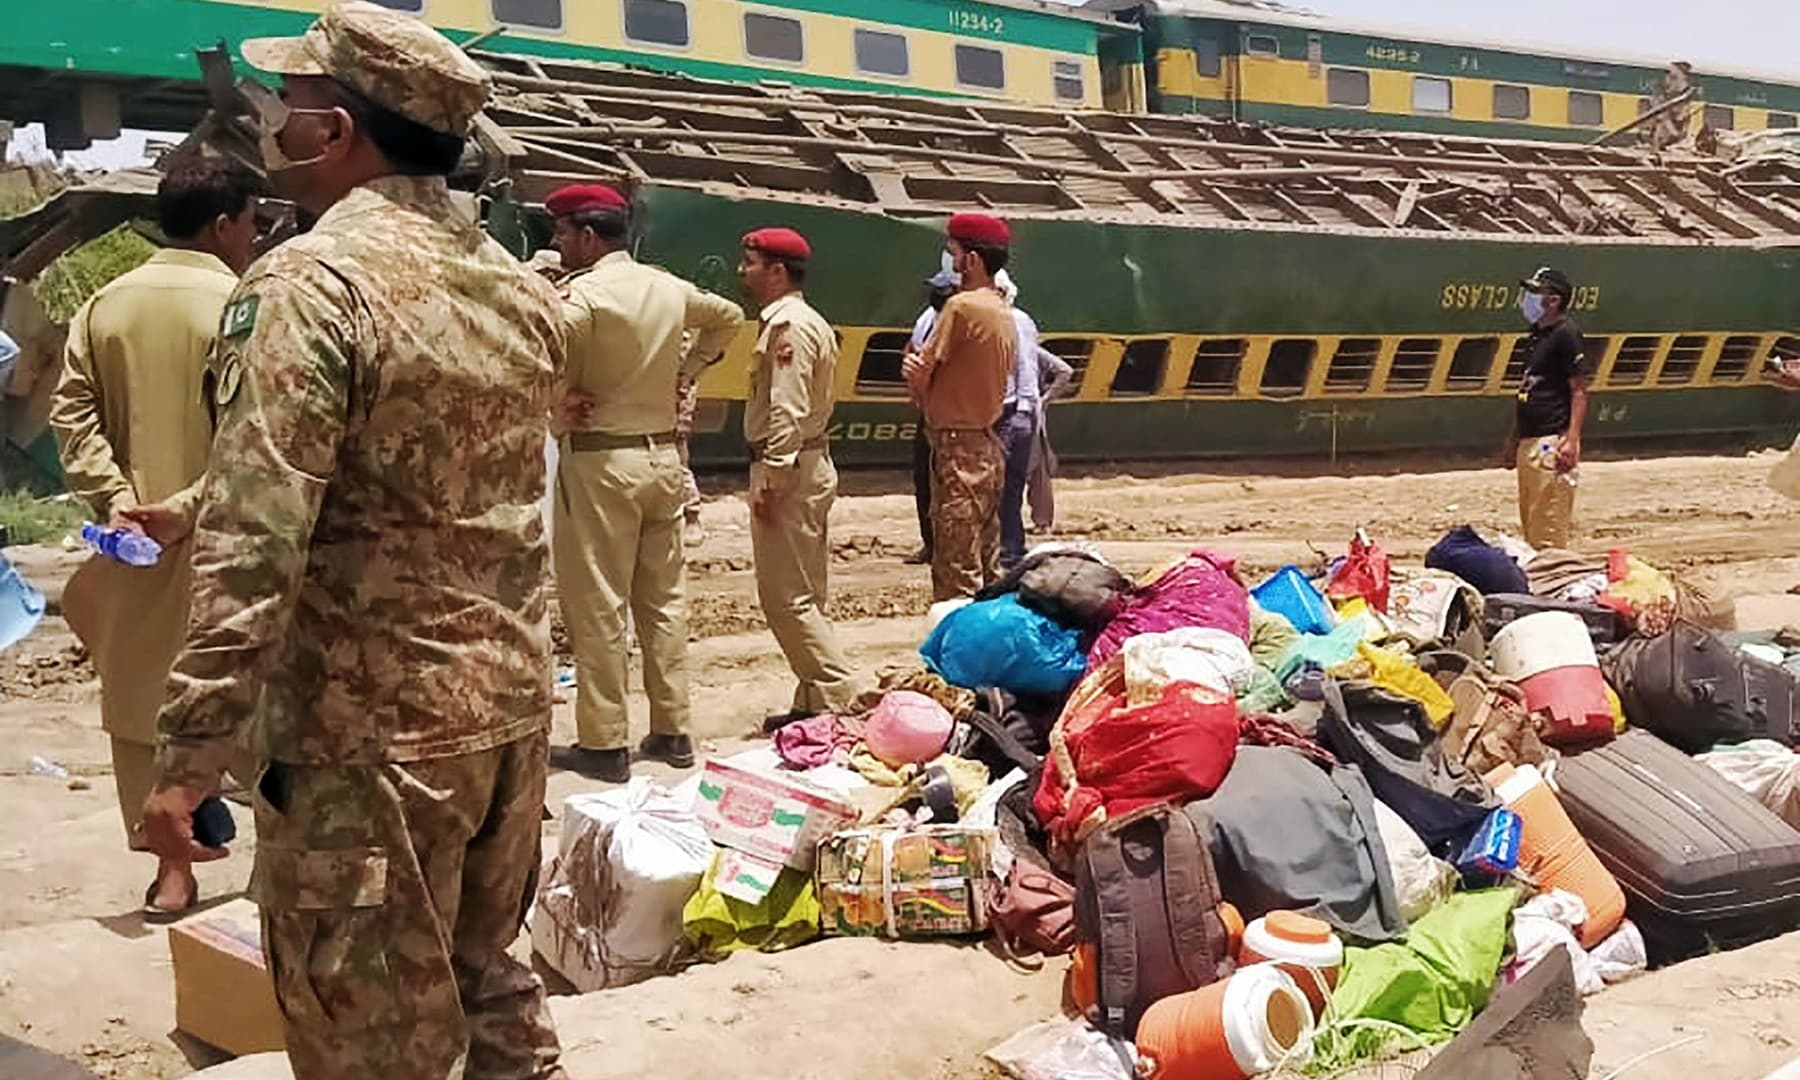 Security personnel stand at the site of a train accident in Daharki area of northern Sindh on June 7. — AFP